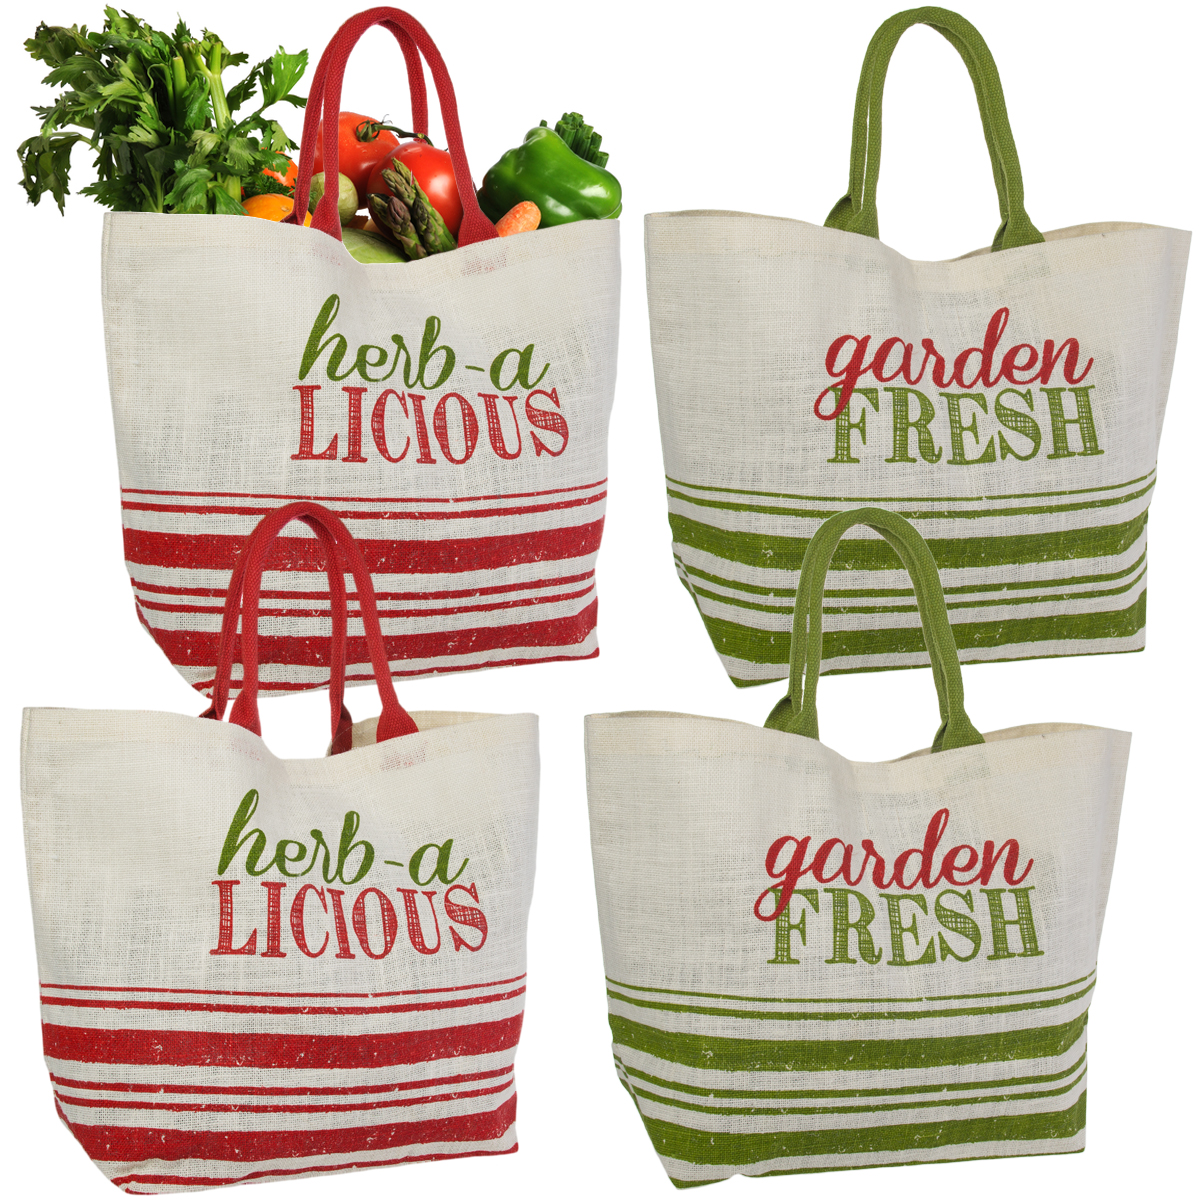 Set of 4 Reusable Shopping Bags Large Burlap Grocery Farmers Market Tote With Handles